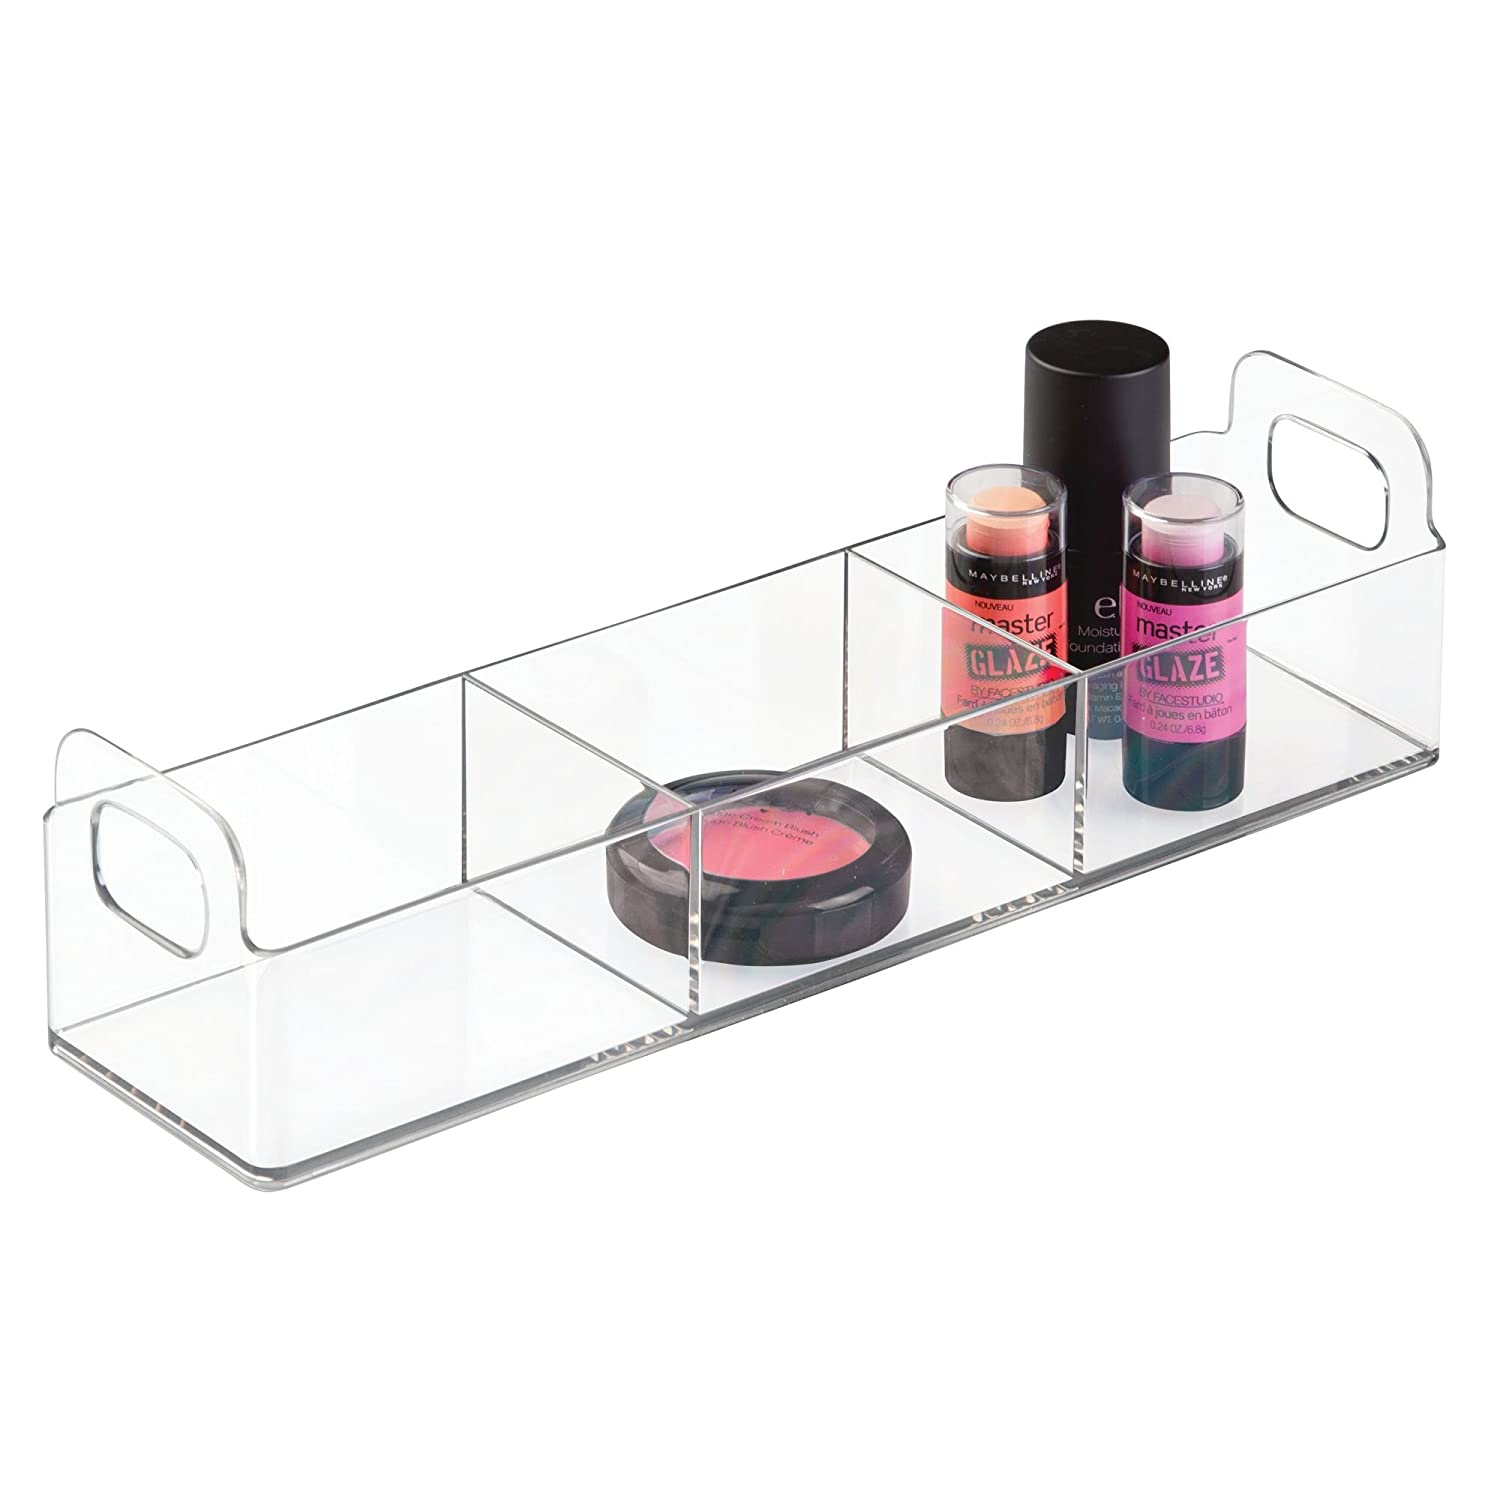 InterDesign Clarity Cosmetic Organizer Tote for Vanity or Medicine Cabinet – Perfect Storage for Makeup or Cosmetics, Large